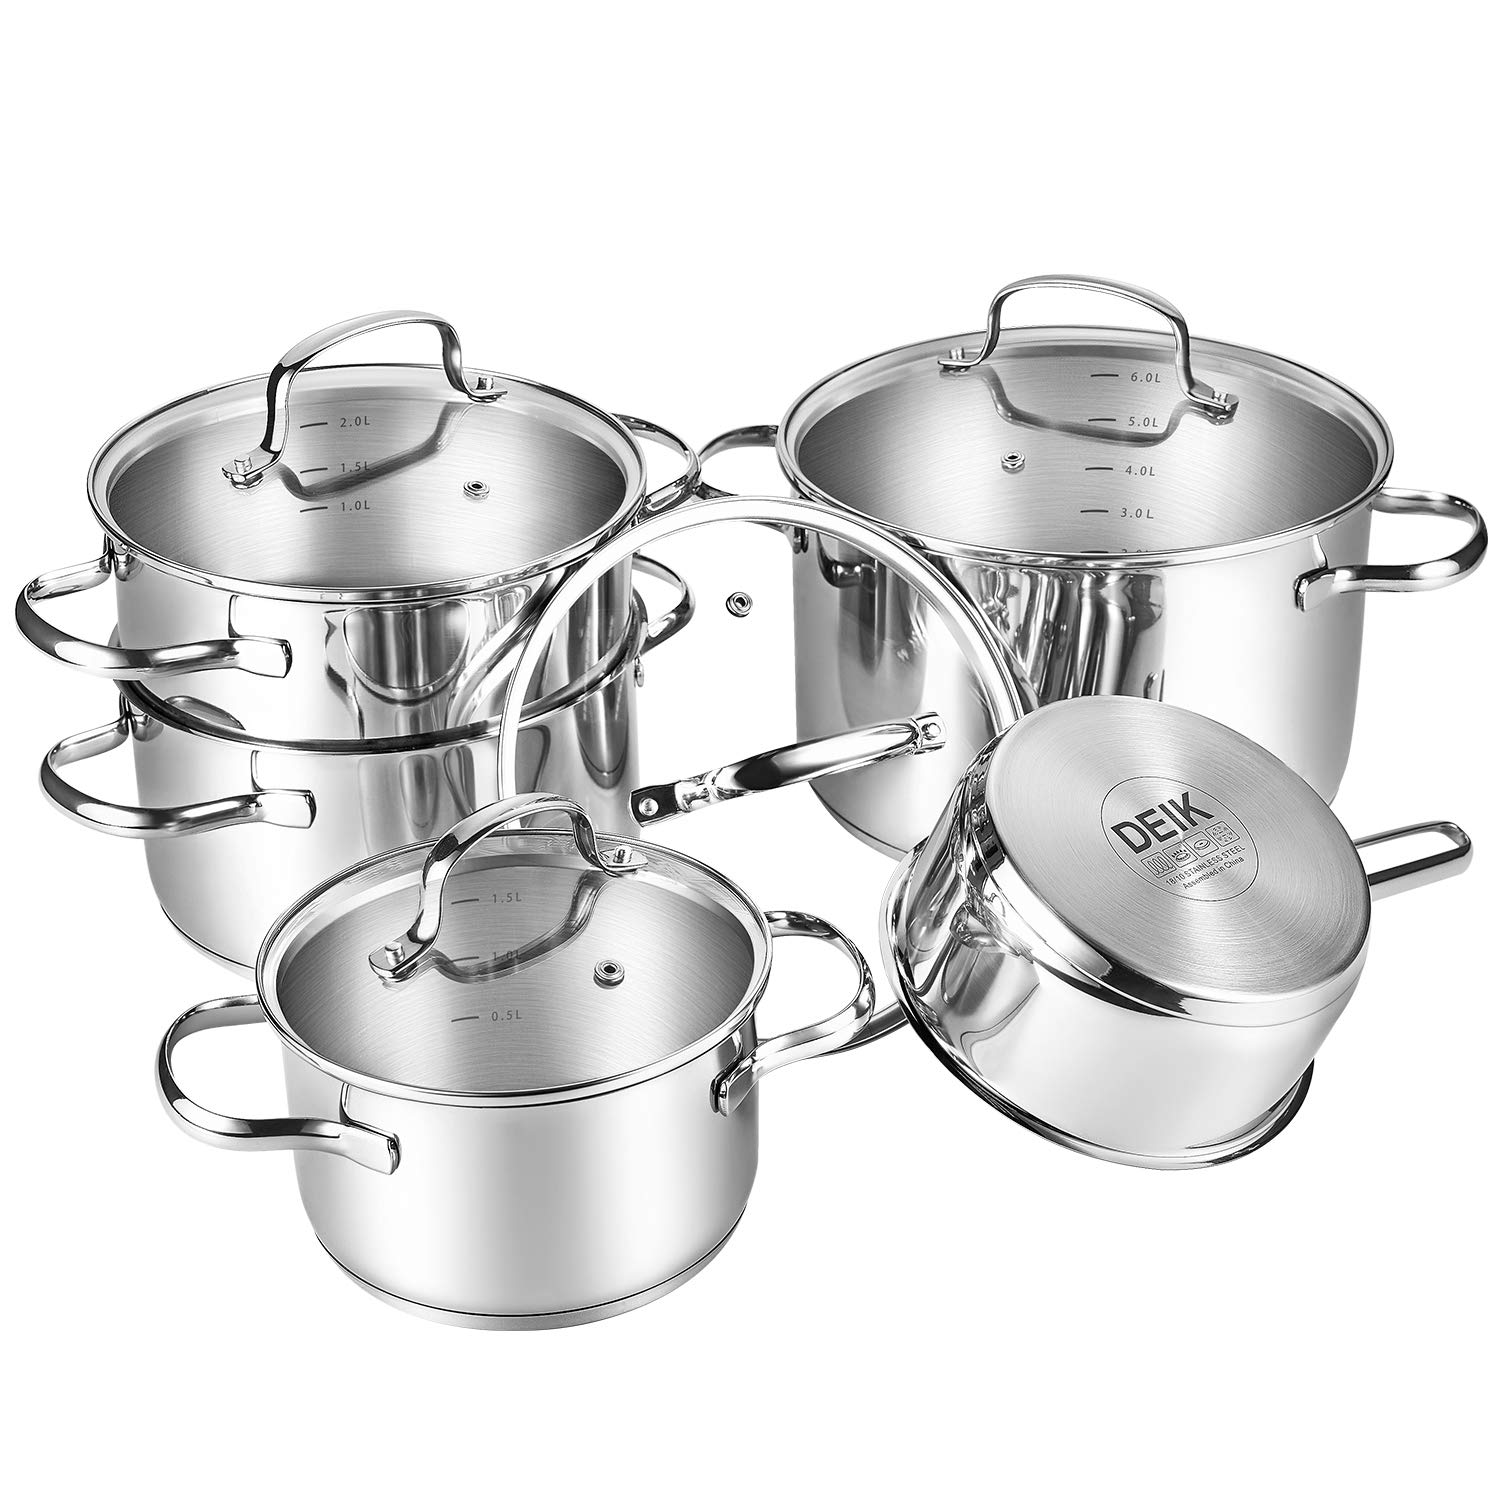 Useful Stainless Steel 5pc Cookware Casserole Stockpot Pot Hob Set With Glass Lids Reputation First Cookware, Dining & Bar